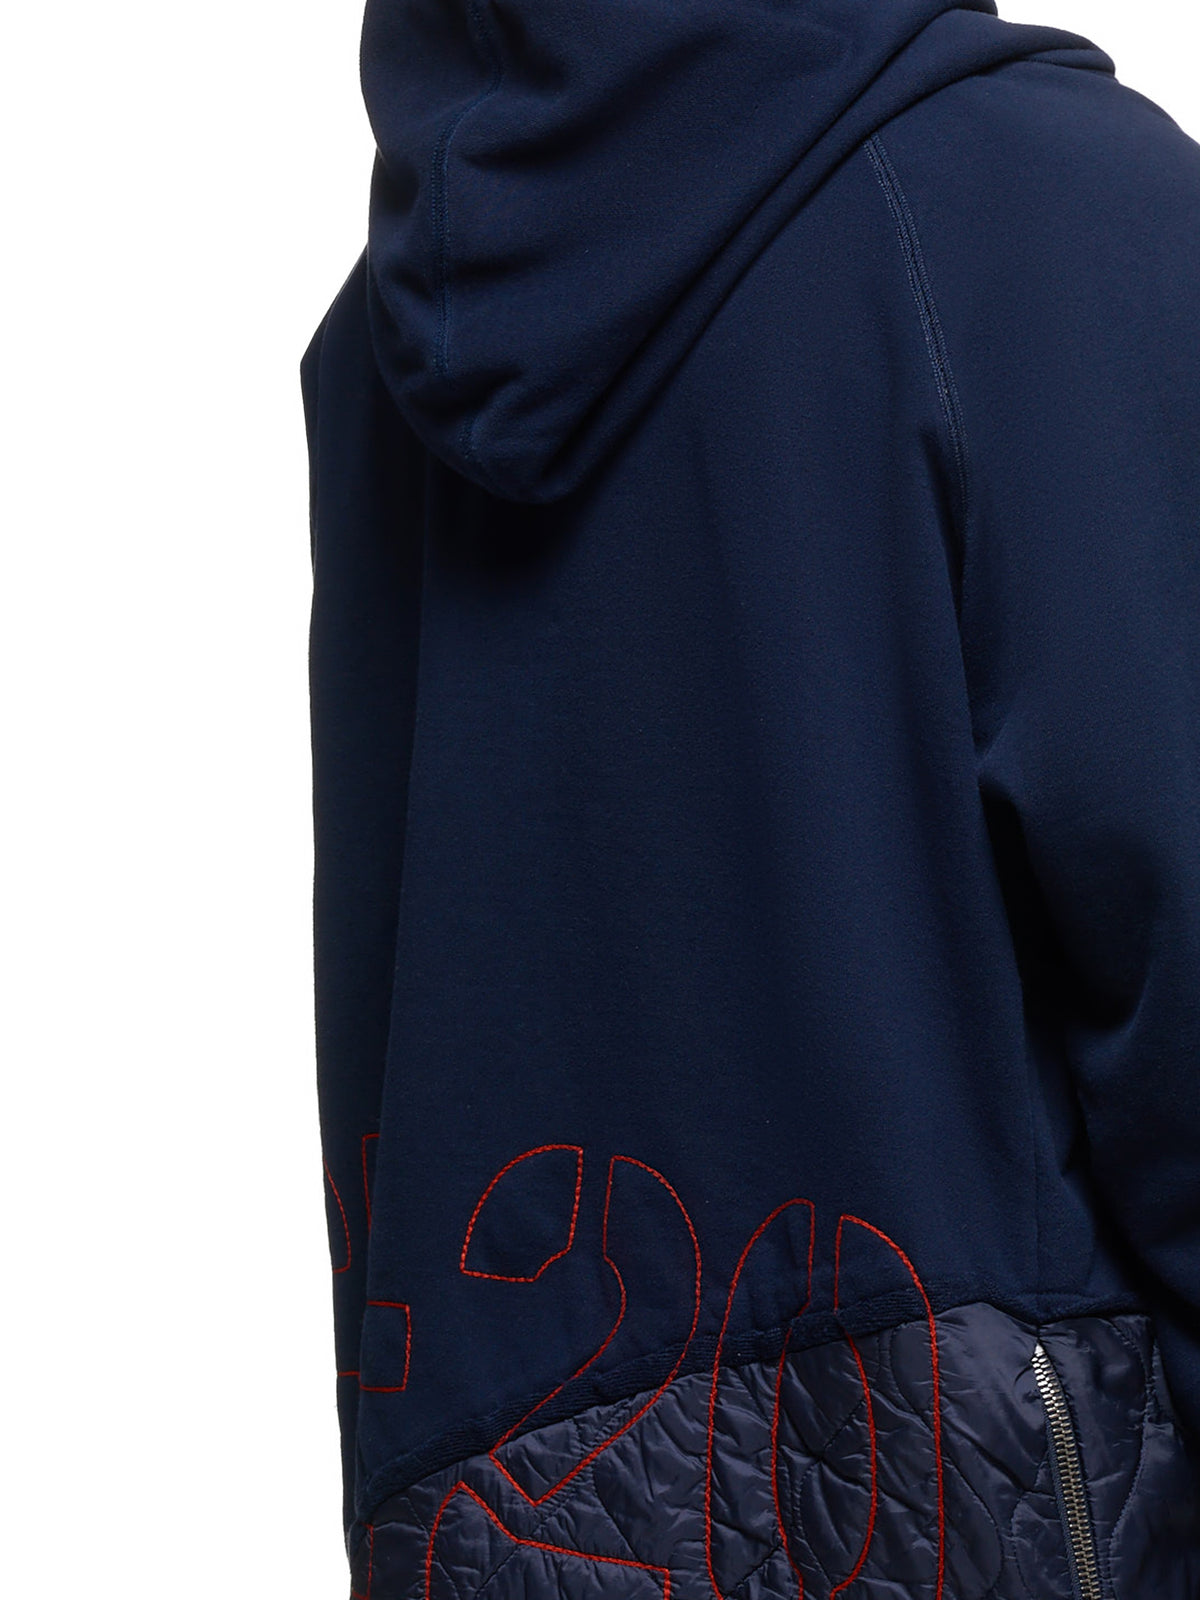 Patched Sweatshirt (P20P1454-NAVY)